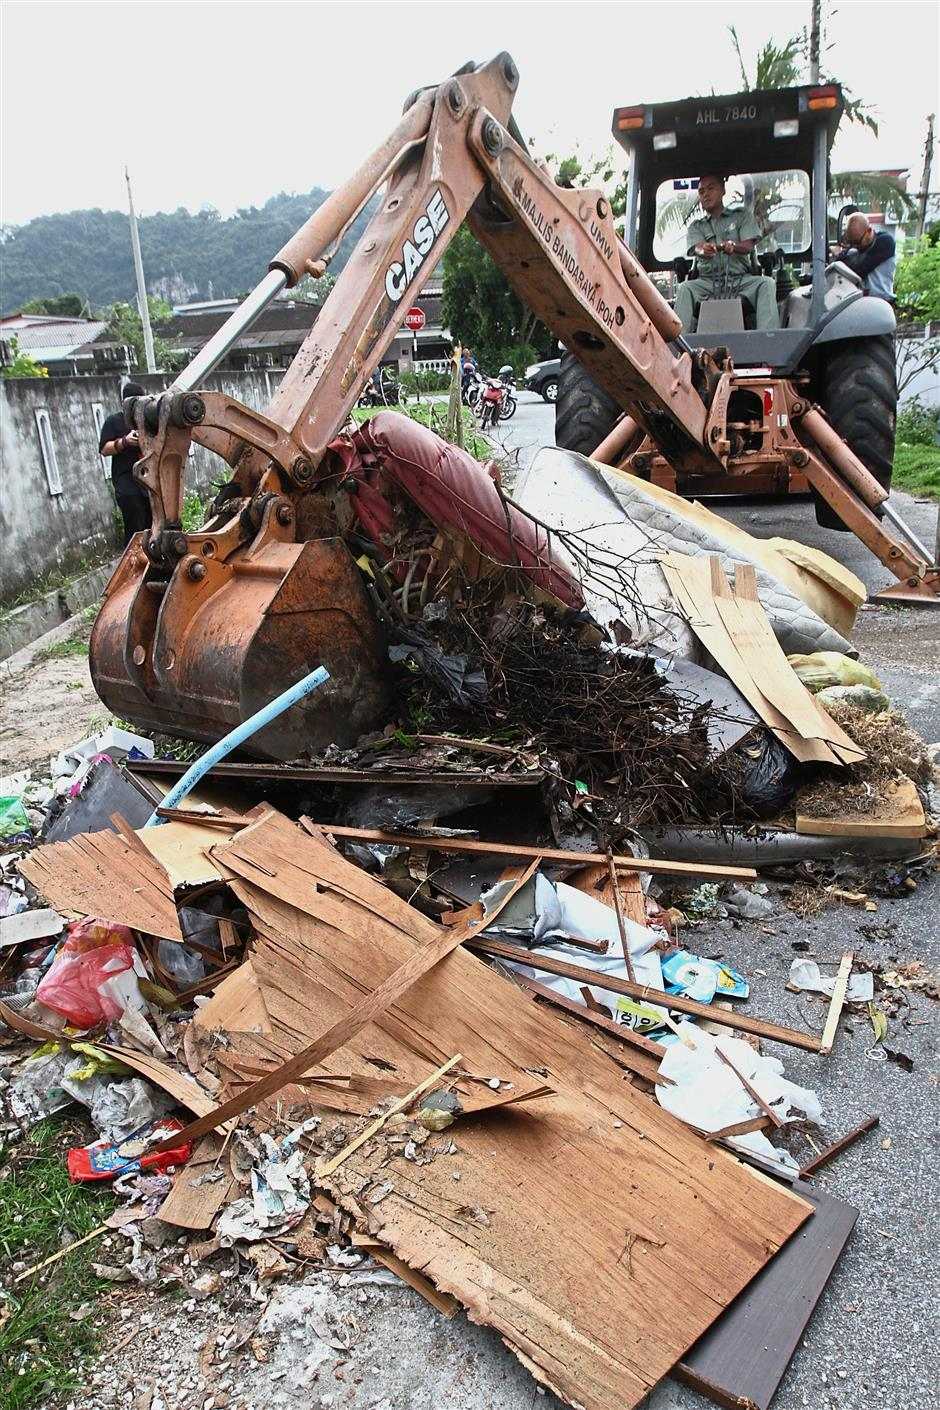 An excavator had to be used to deal with the amount of rubbish that had to be cleared during the gotong royong.